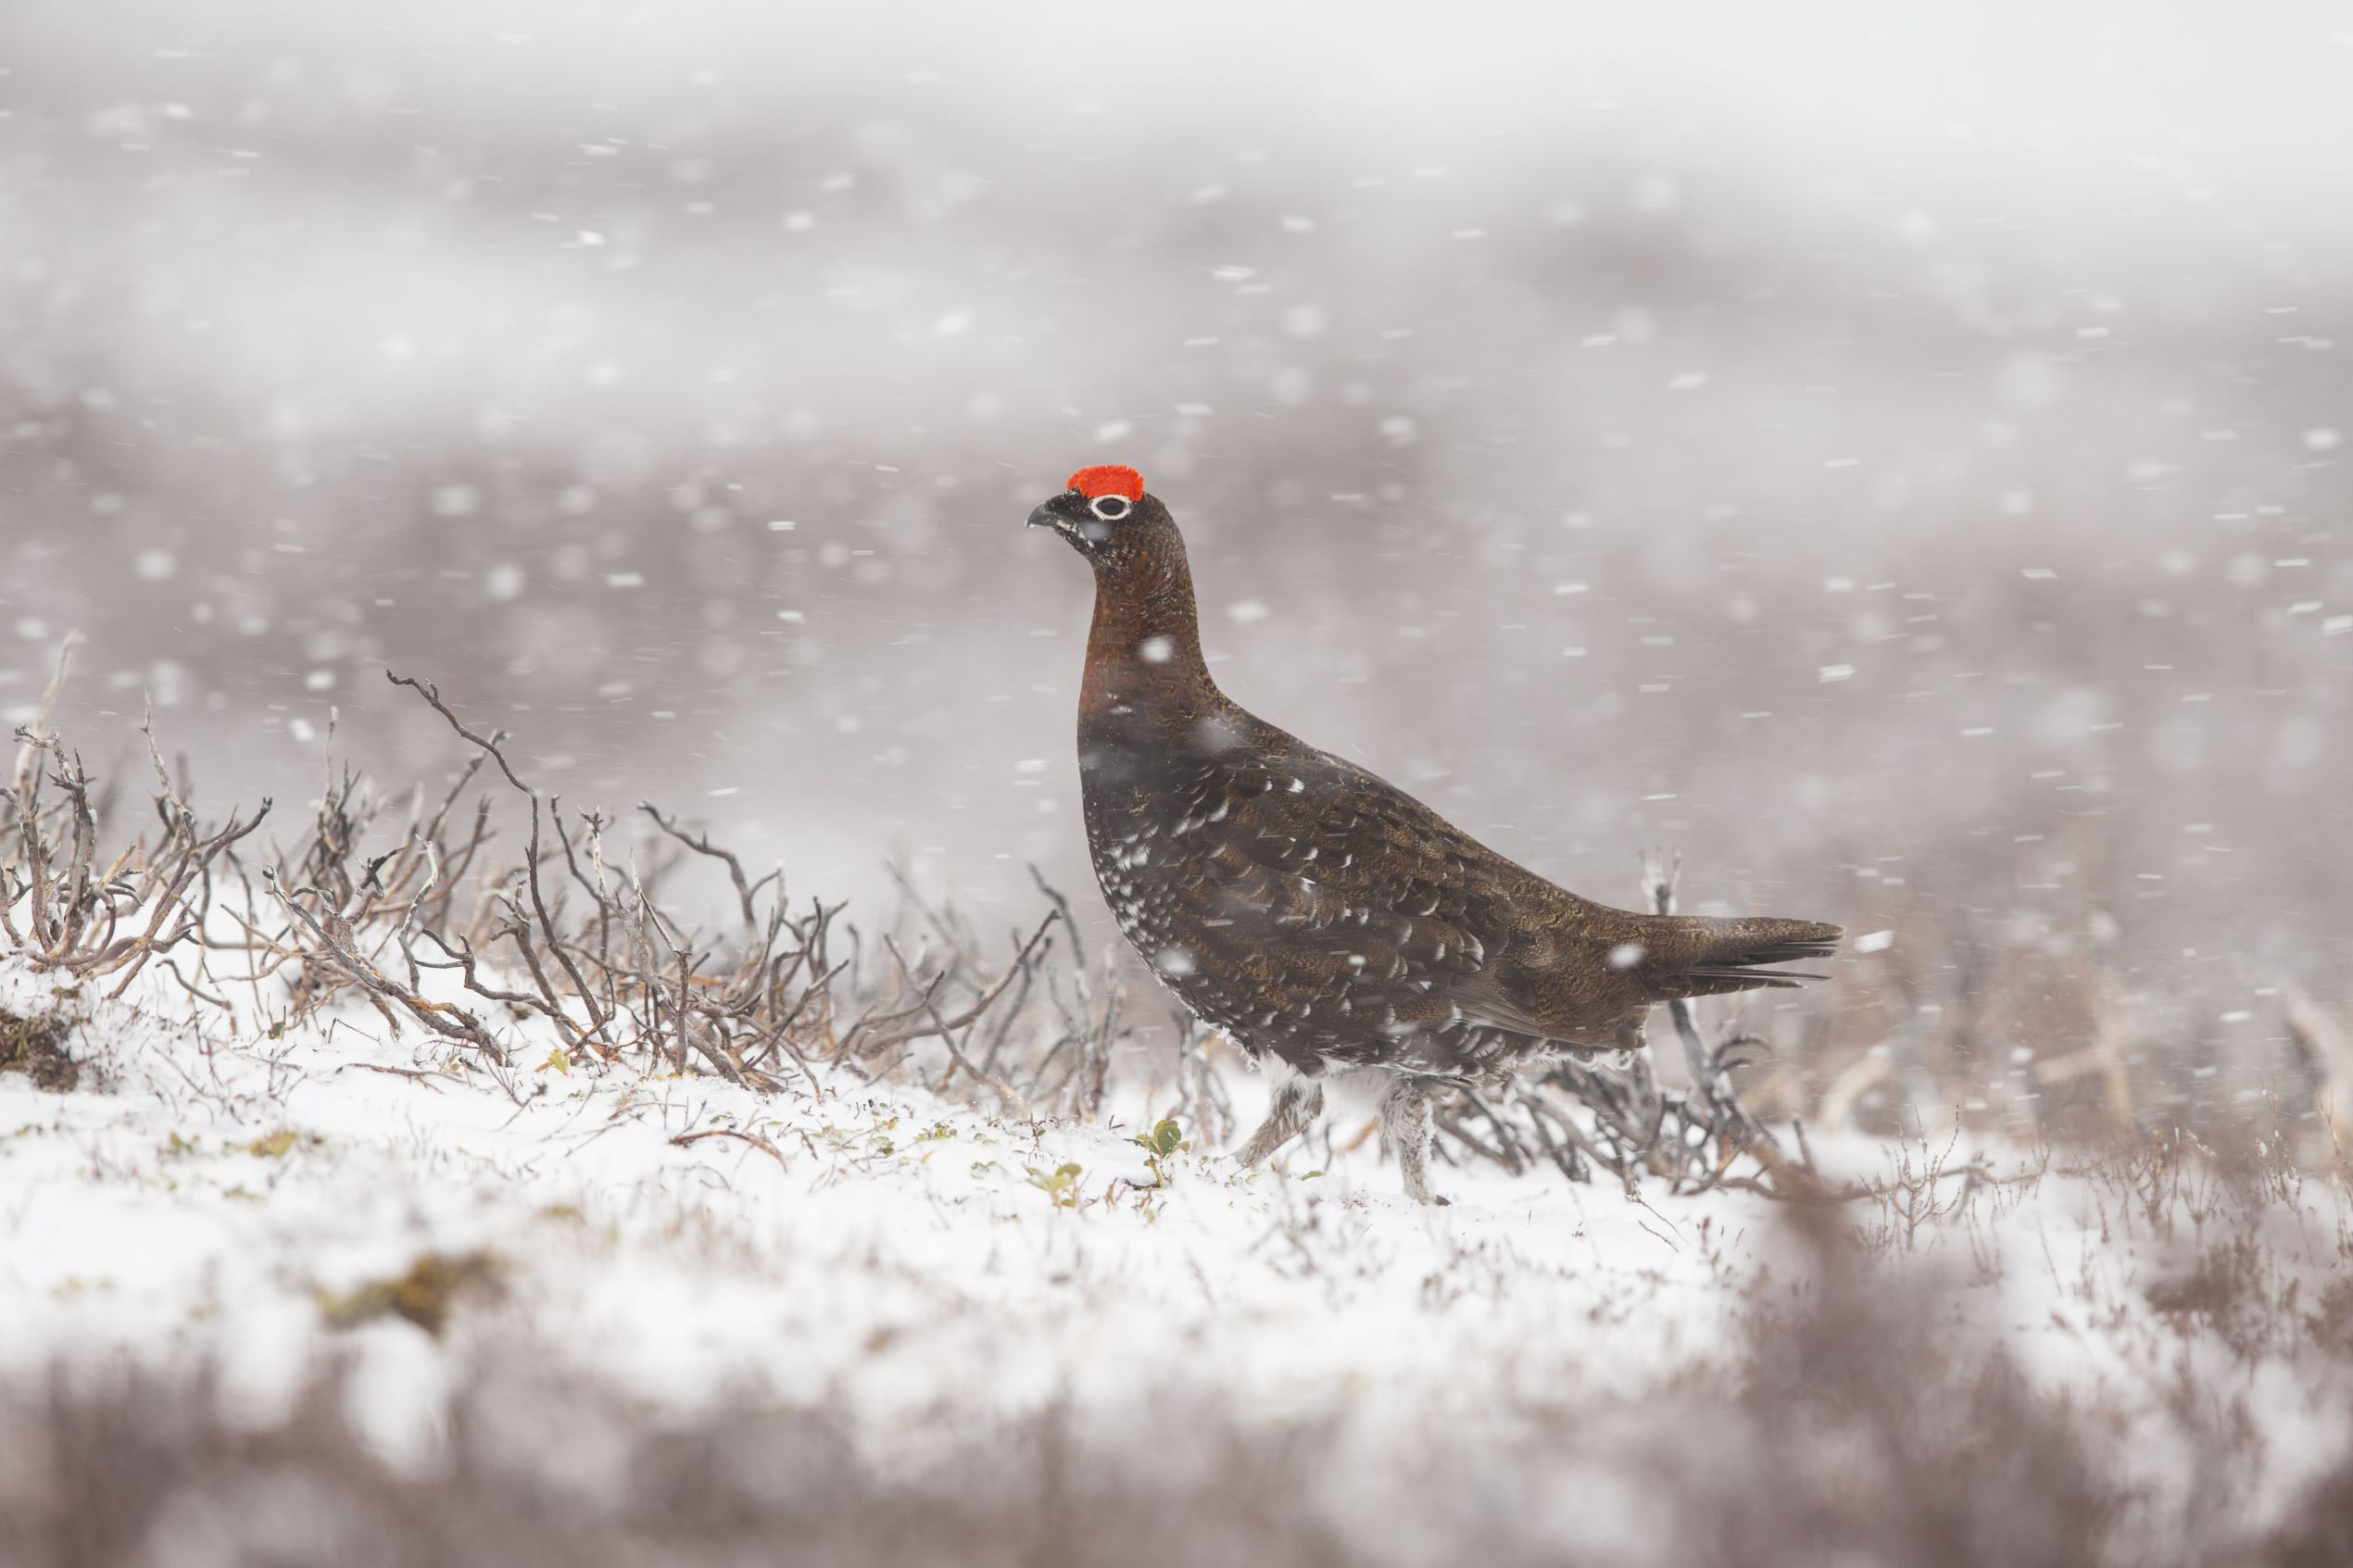 Слайд 41 из 67: Snow in Aberdeenshire, Scotland, Britain - 25 Apr 2016 Red Grouse (Lagopus lagopus scoticus) amongst heather in snow